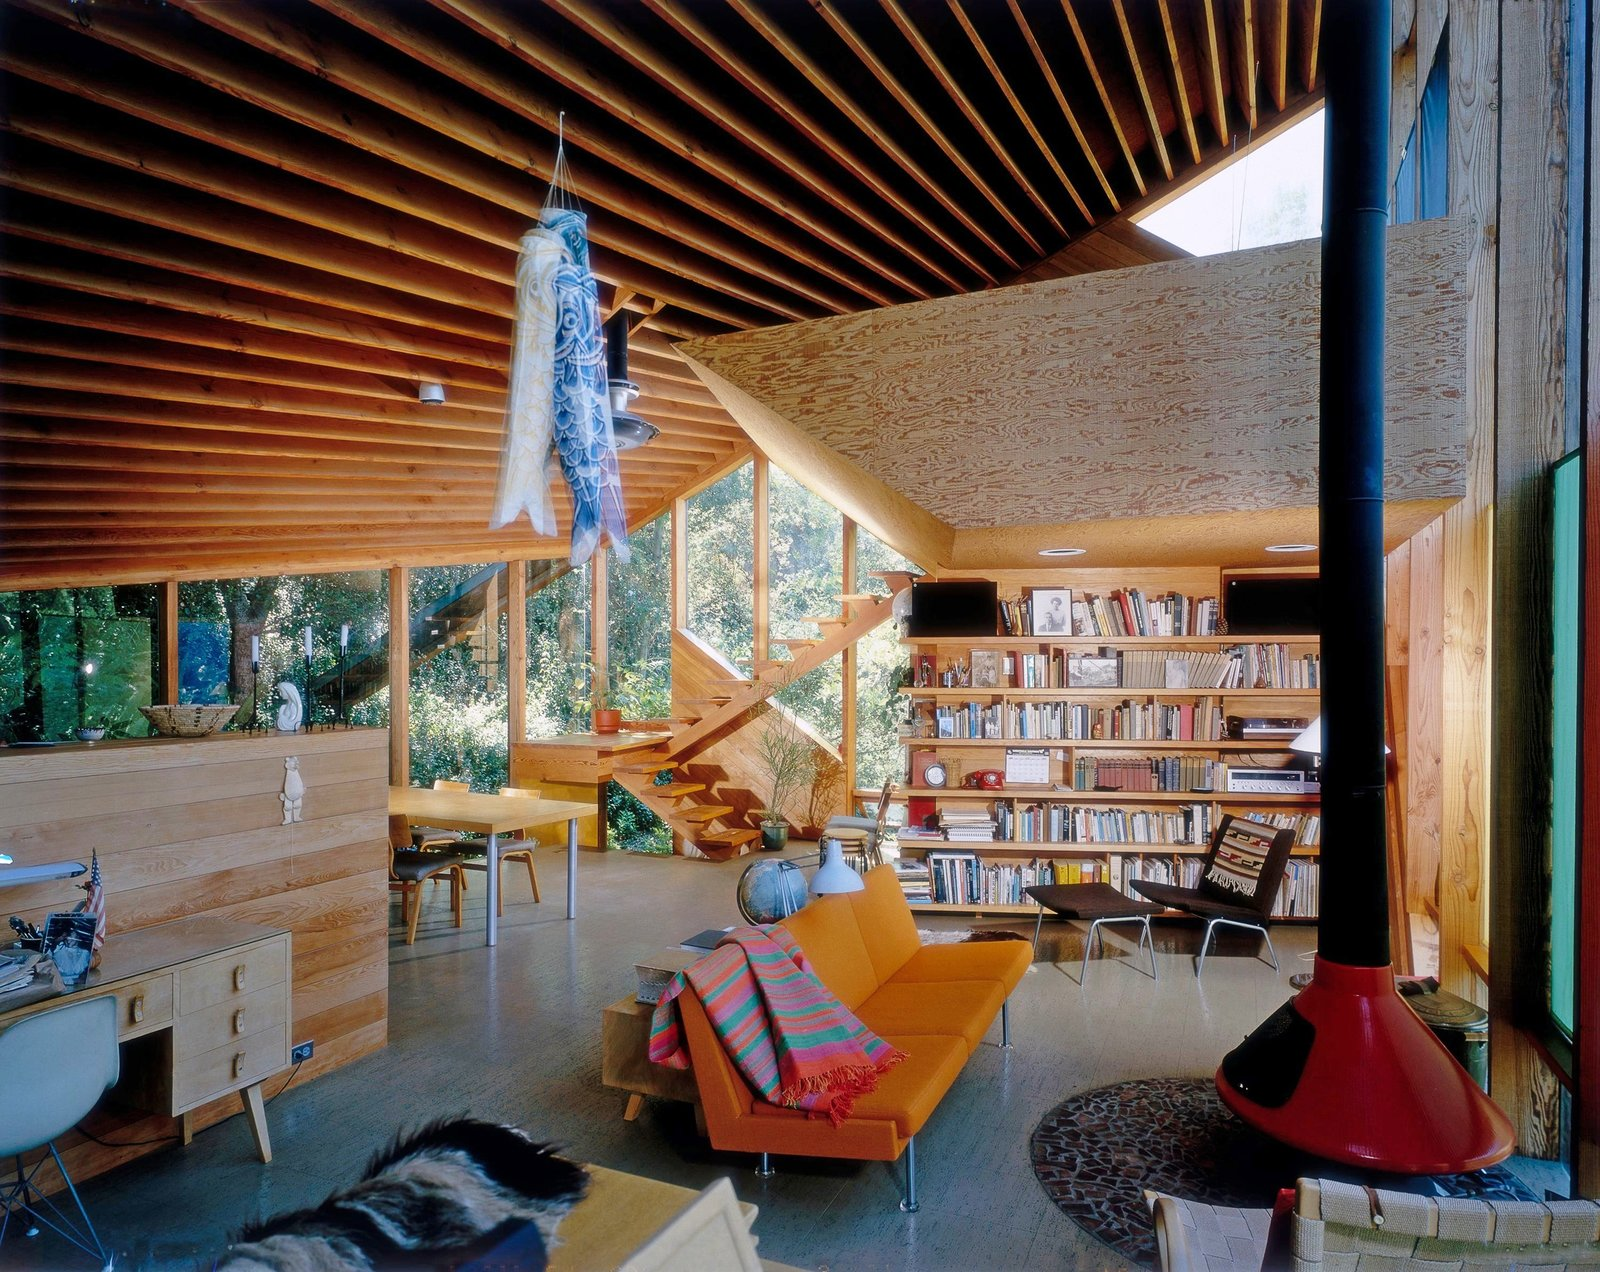 Walstrom House by John Lautner, Los Angeles, CA, 1979  Photo 9 of 11 in A New Book Celebrates Modernism With Futuristic Homes and Visionary Masterpieces